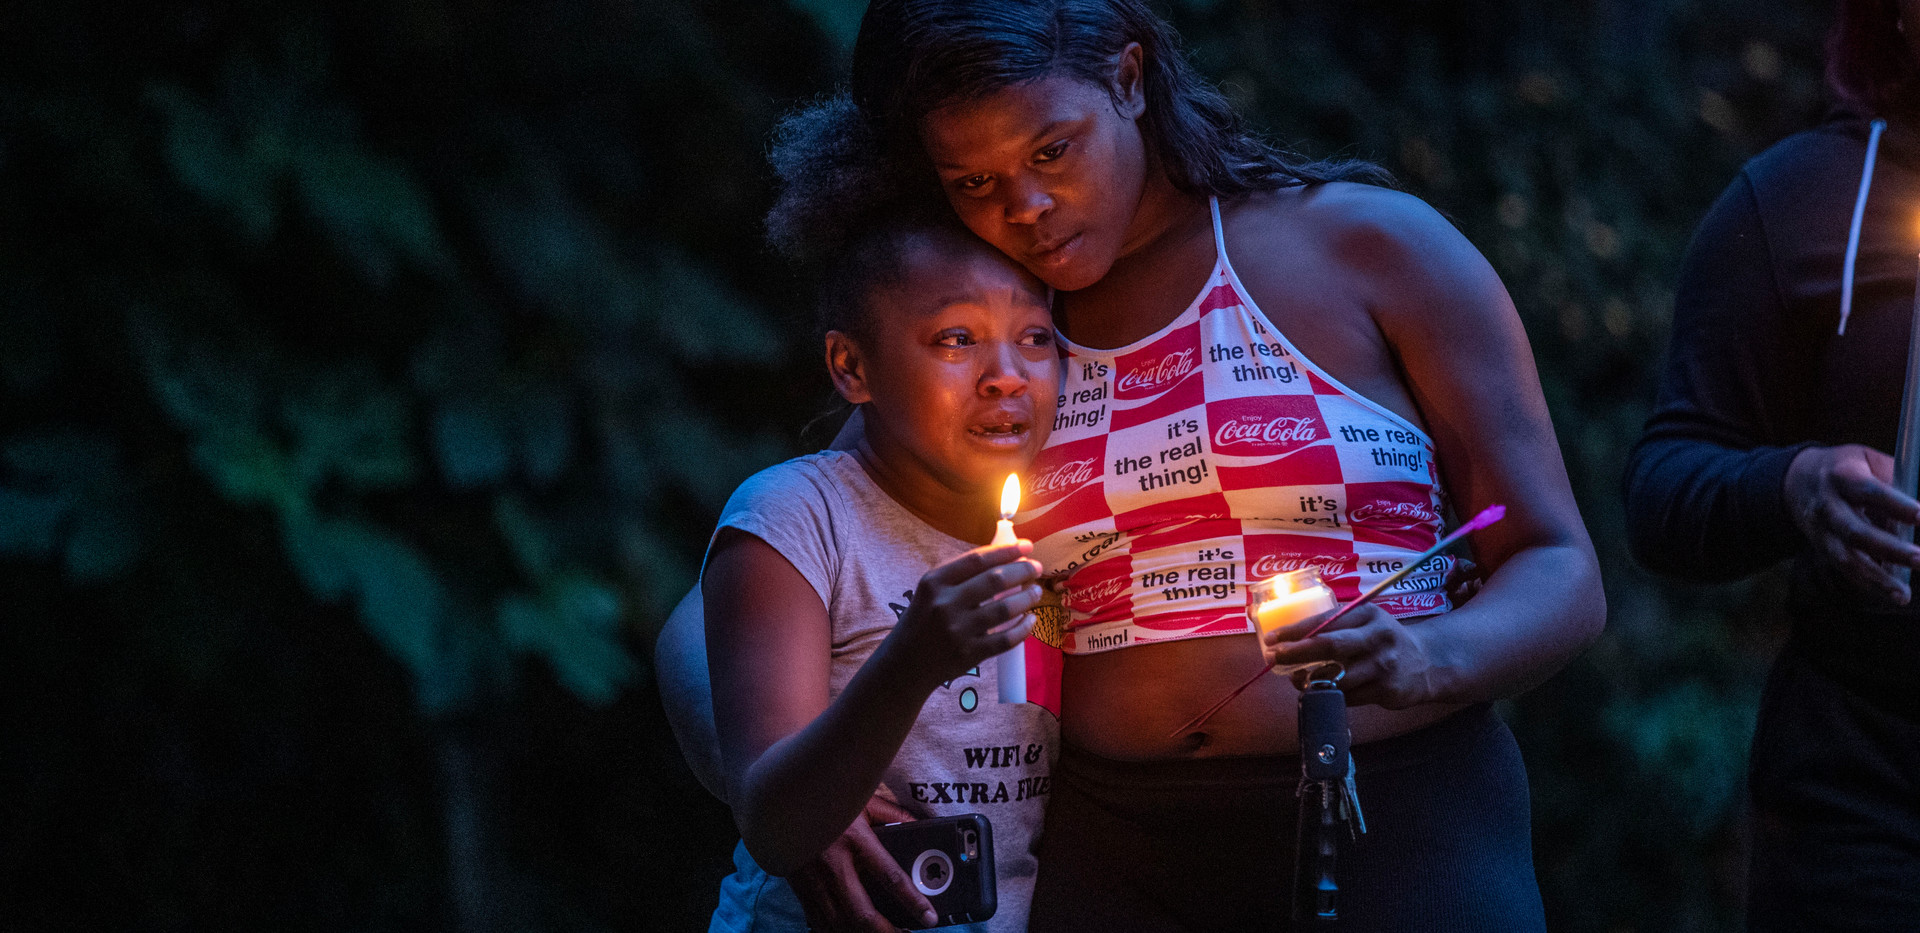 A crowd gathers as a candlelight vigil is held honoring Malik Jackson, 21, who was stabbed and killed on Wednesday, May 27, 2020.